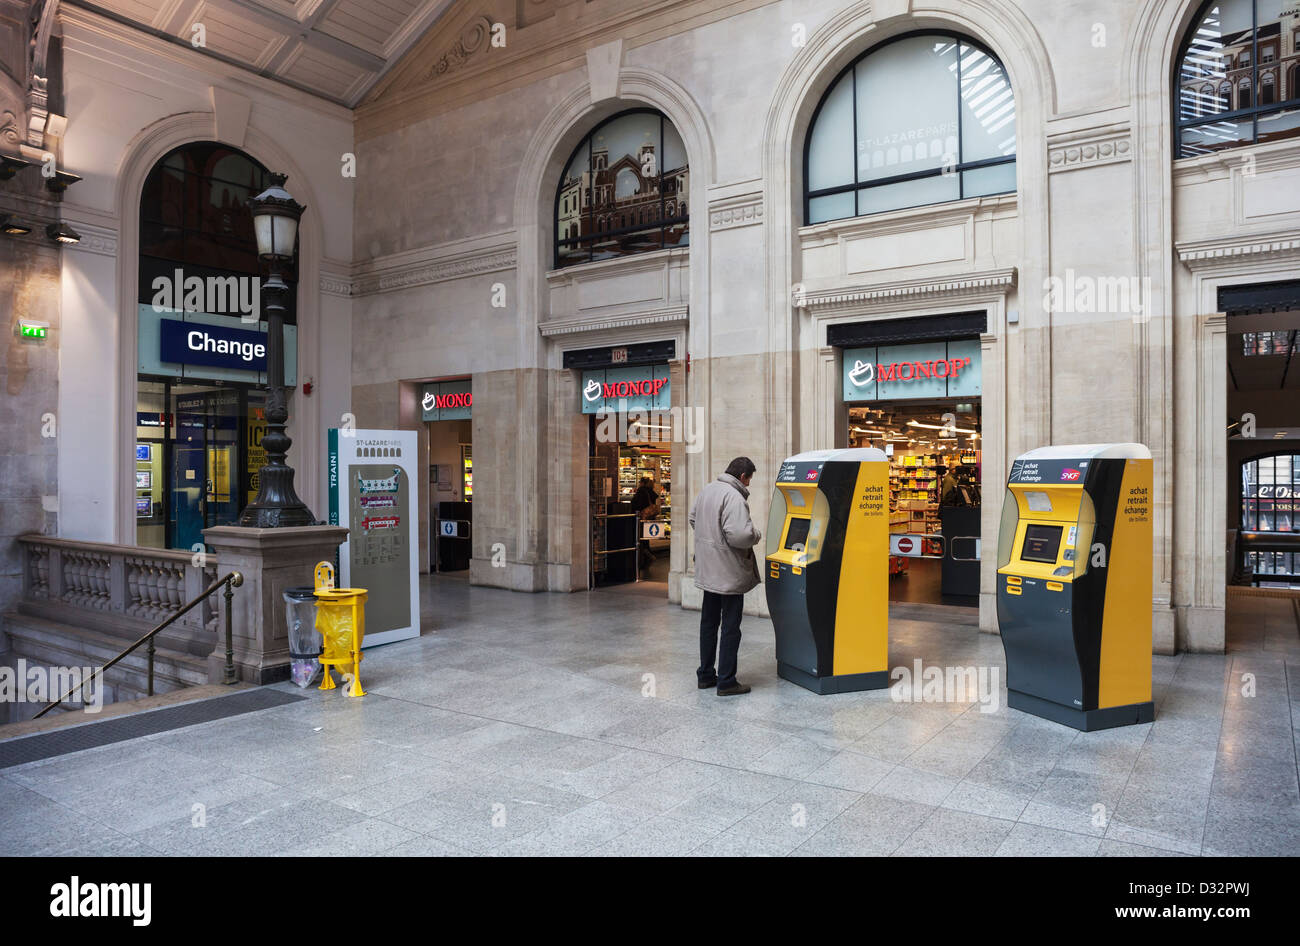 Gare St Lazare Railway Station In Paris With Ticket Machines Monop